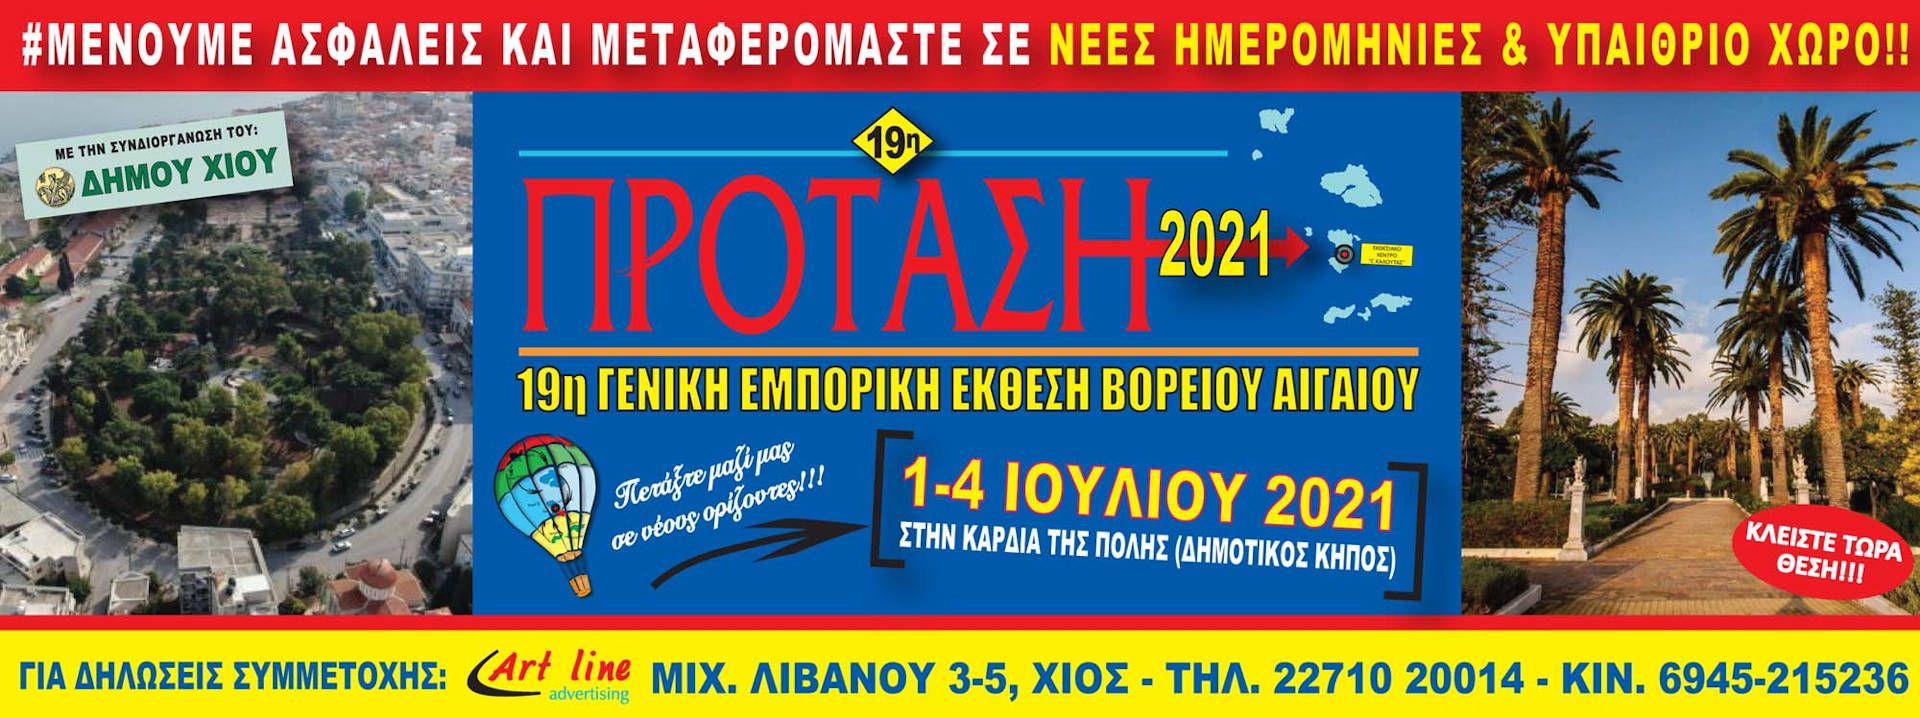 PROTASI KHPOS 2021 banner